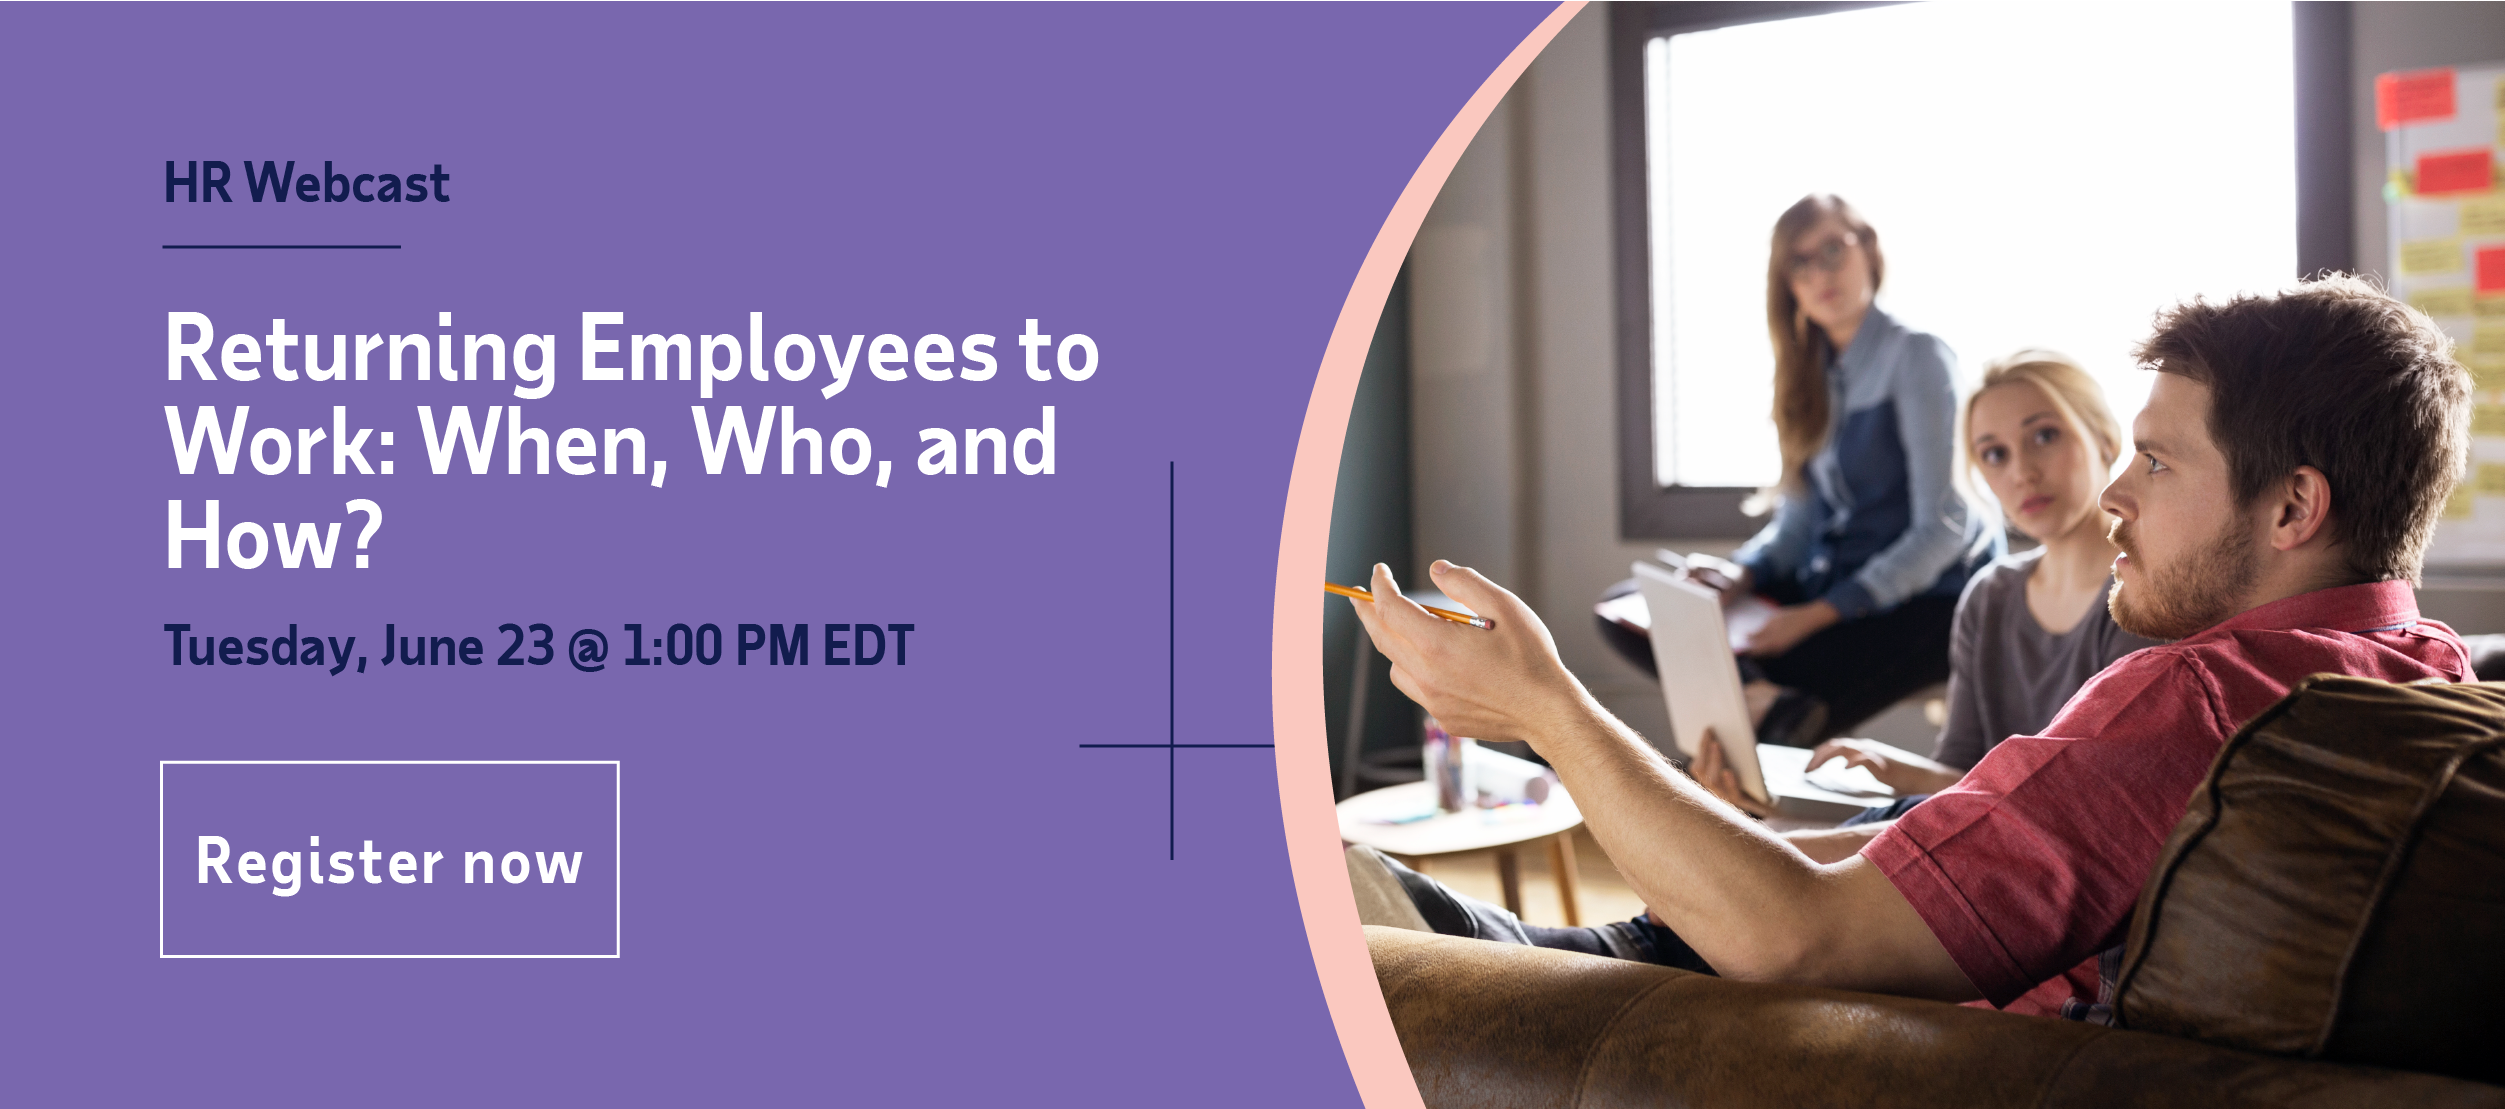 HR Webcast - Returning Employees to Work: When, Who, and How? - Tuesday, June 23 @ 1:00 PM EDT - Register now!